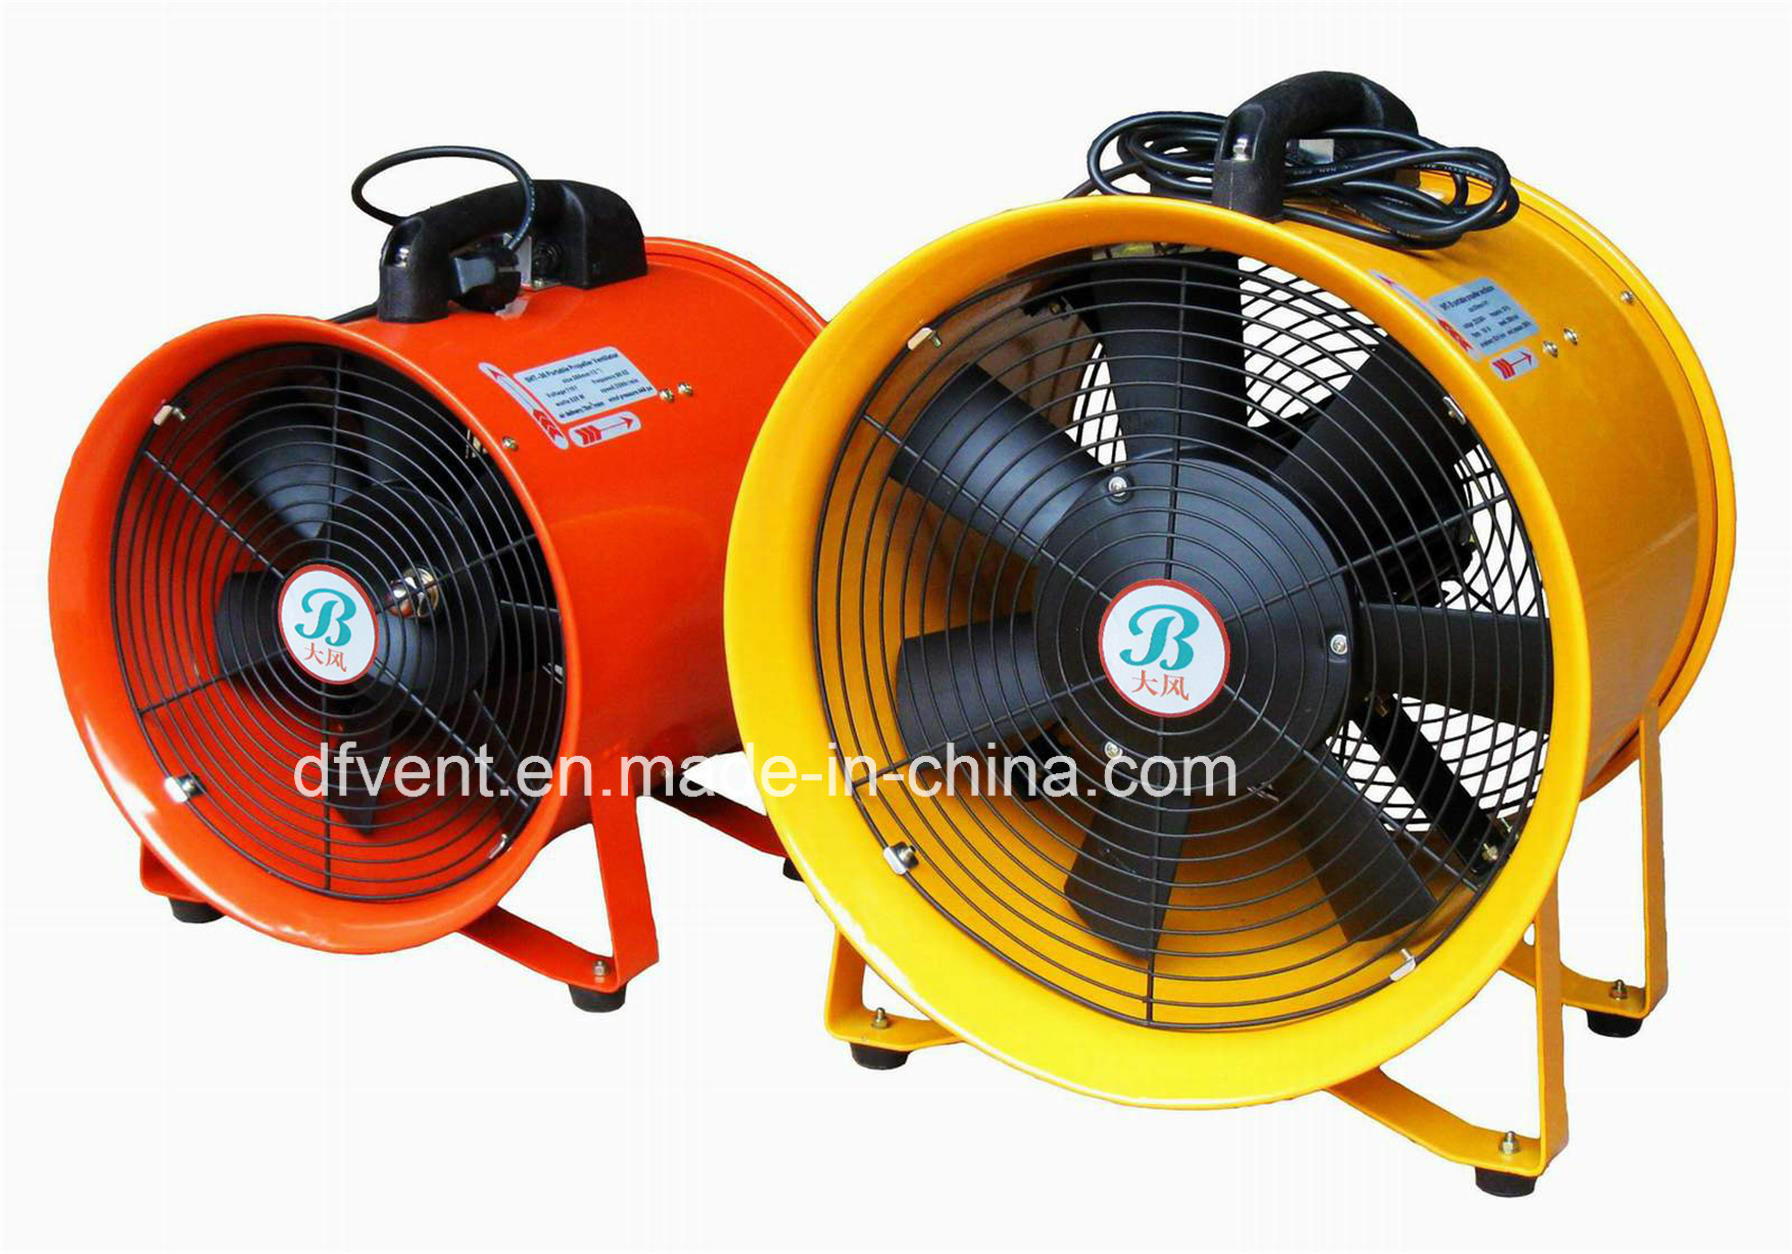 """China Electric Portable Exhaust Blower Fan 8"""" 12"""" - China ..."""